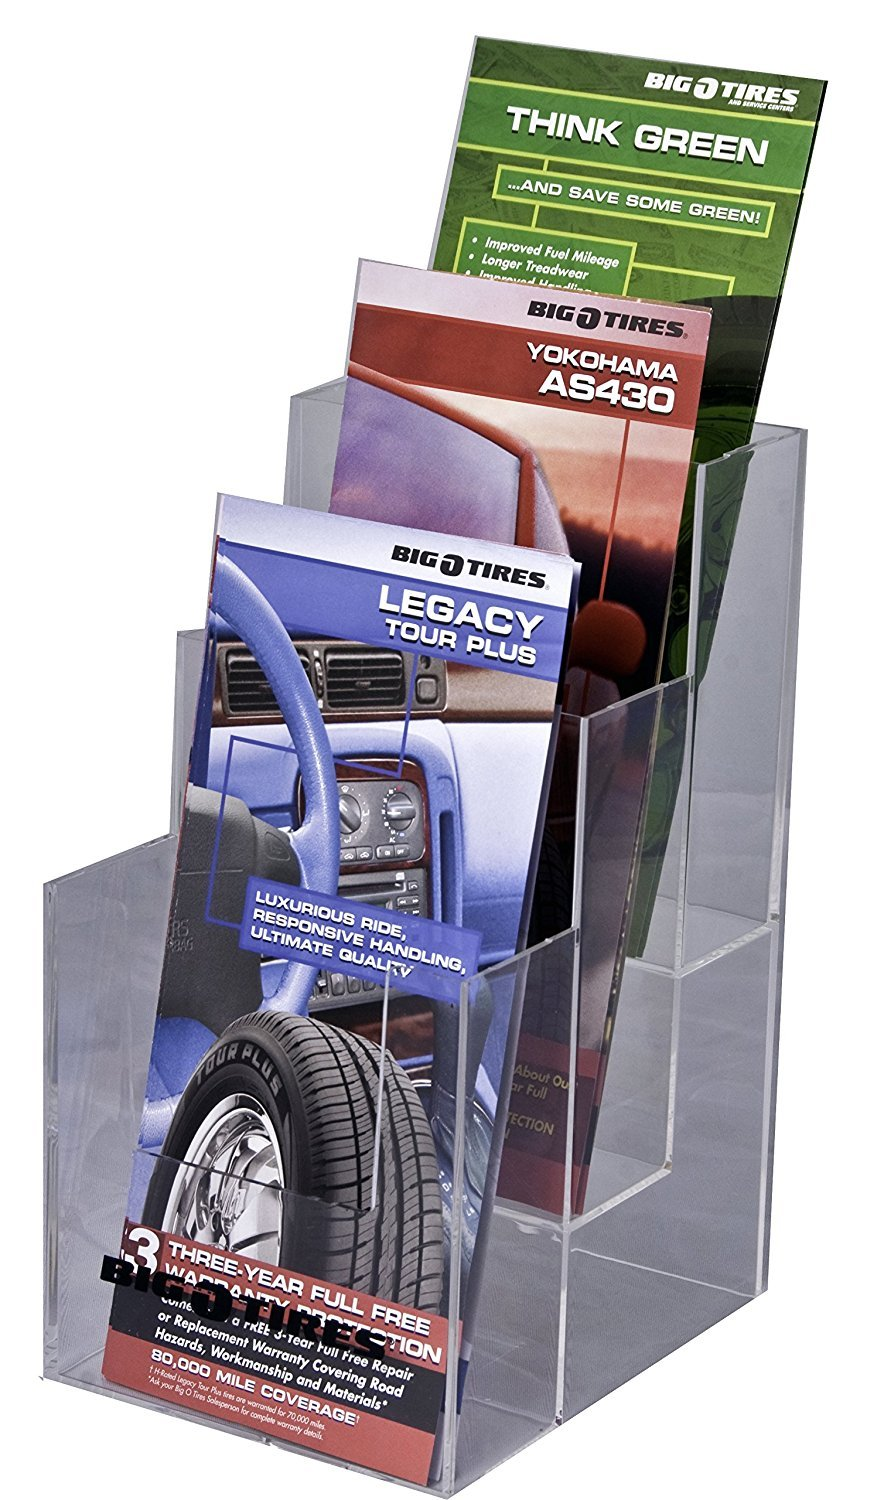 Clear-Ad - LHF-S103 - Acrylic 3 Tier Trifold Brochure Holder - Plastic Literature Holder for Flyers, Booklets, Bills, Mail, Letters, Cards, Pamphlets, Maps (Pack of 4)